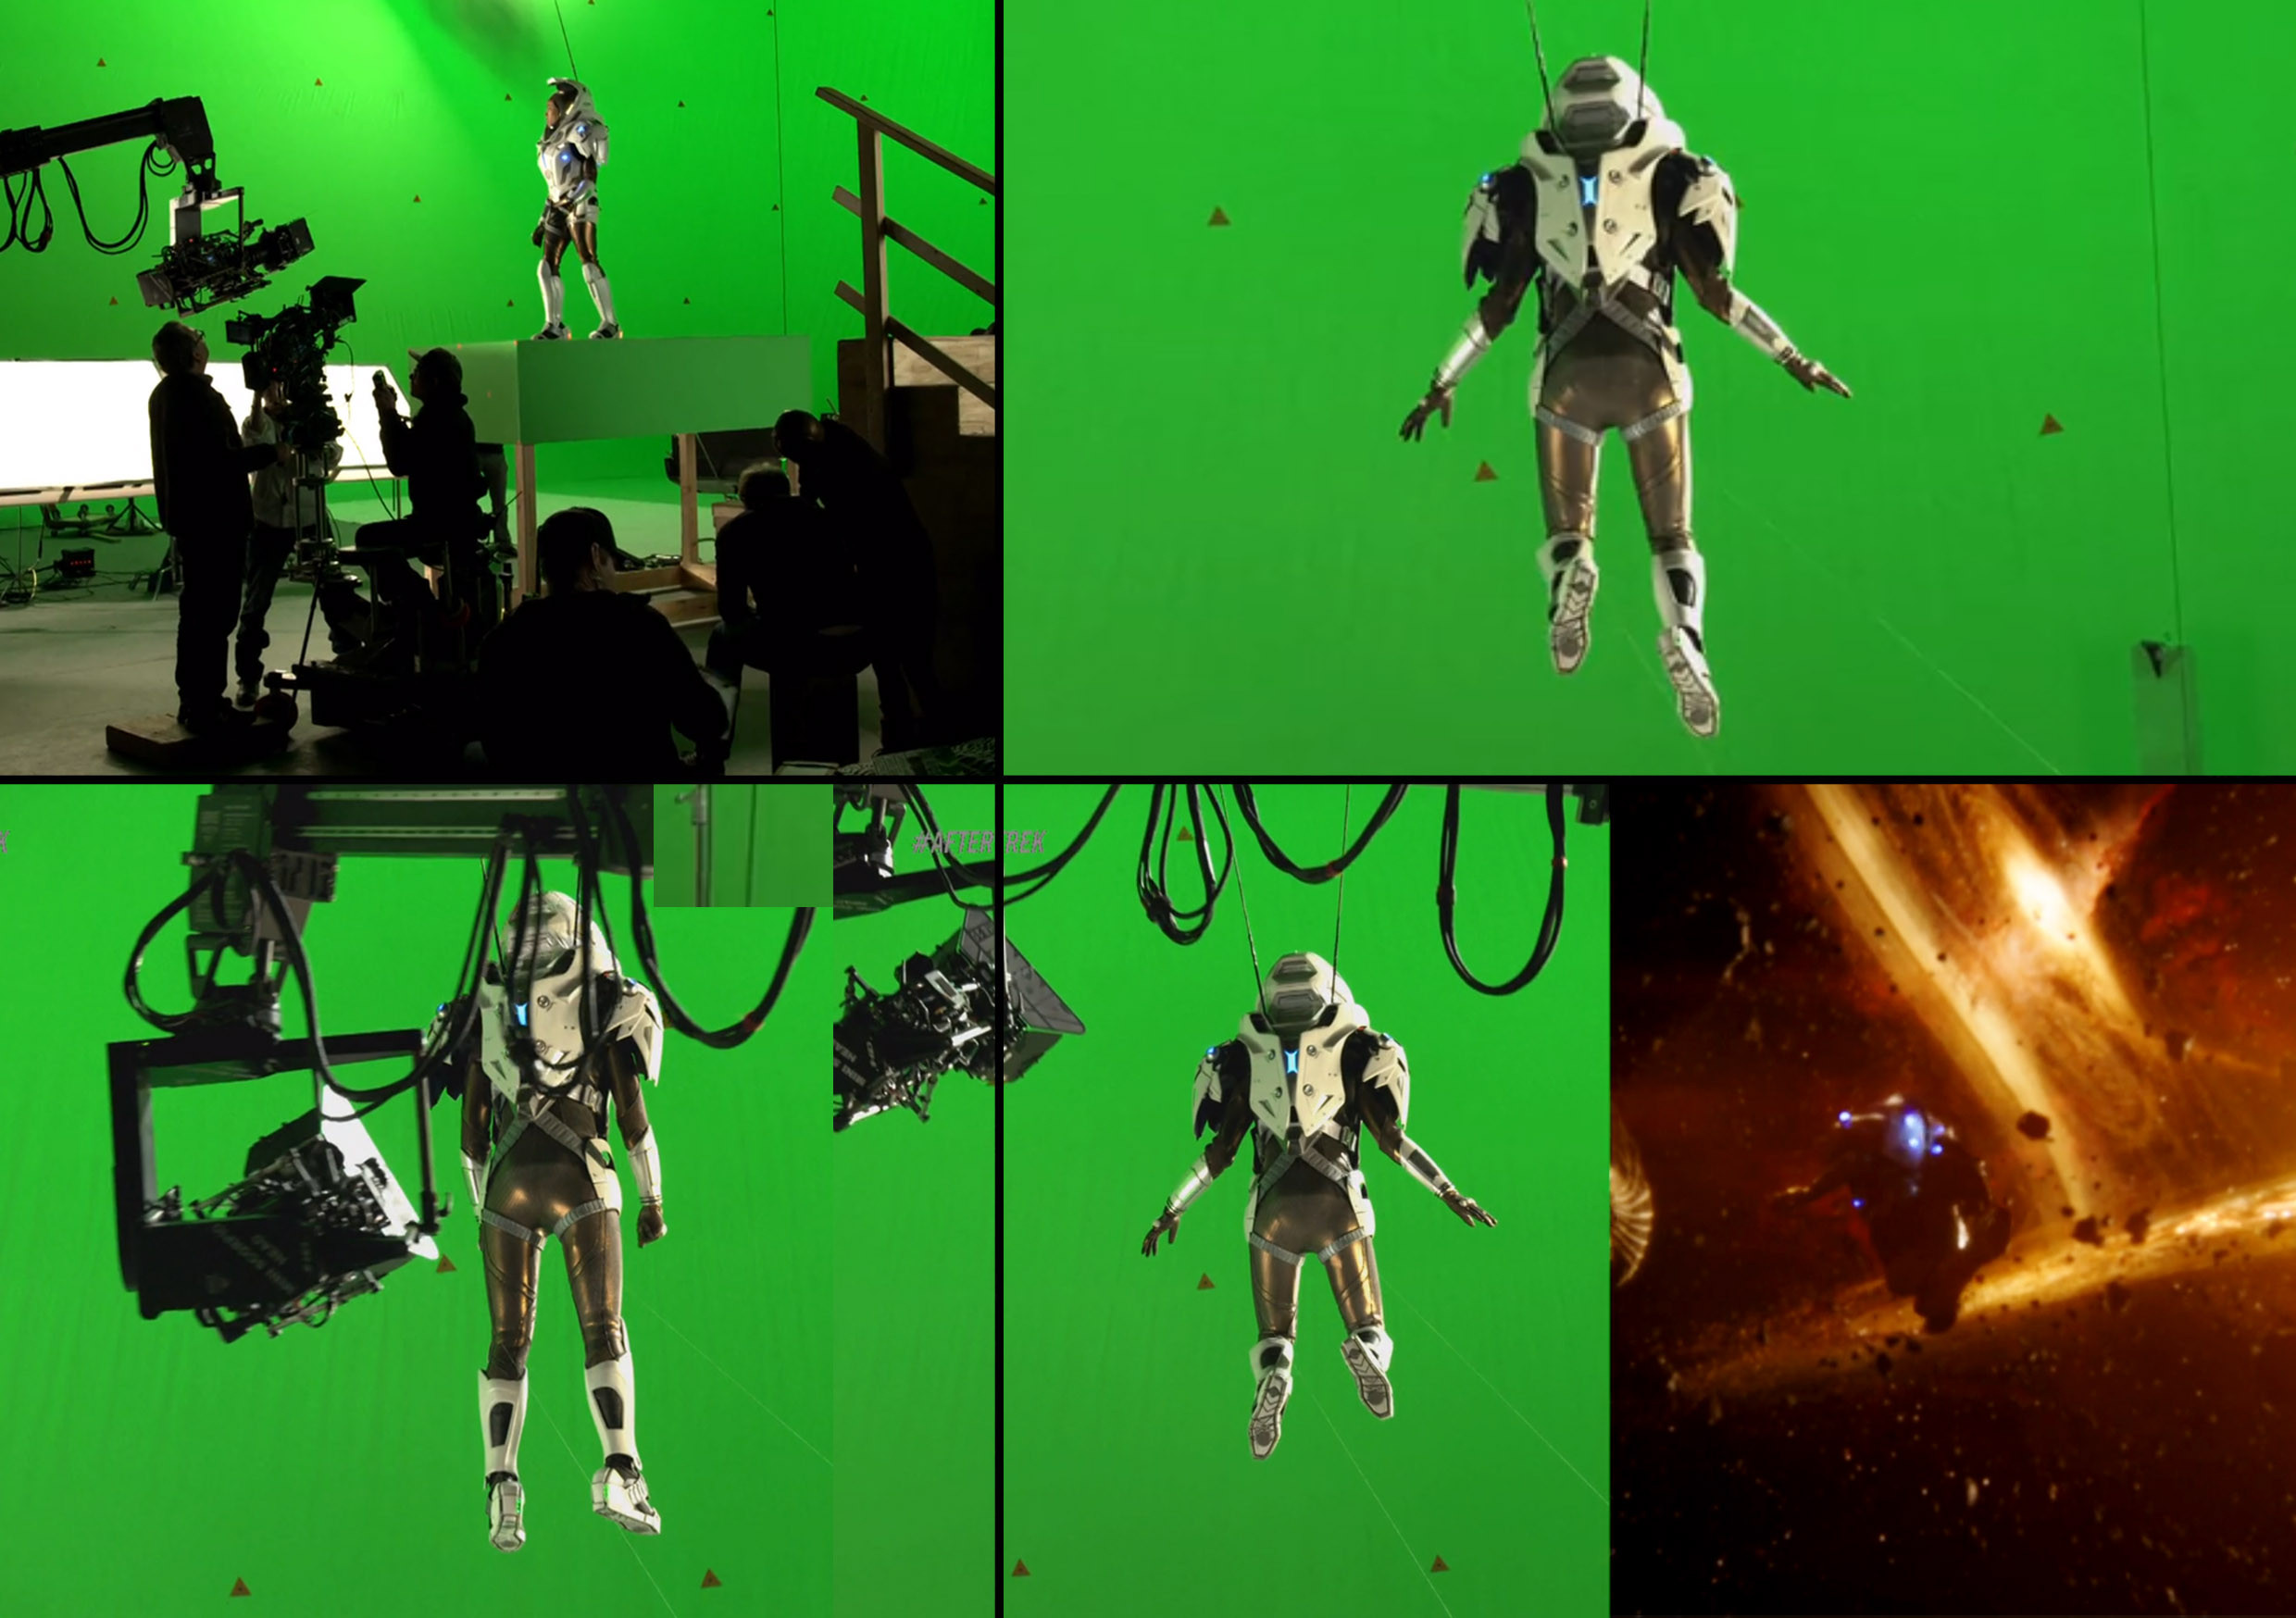 Green screen shots from the making of